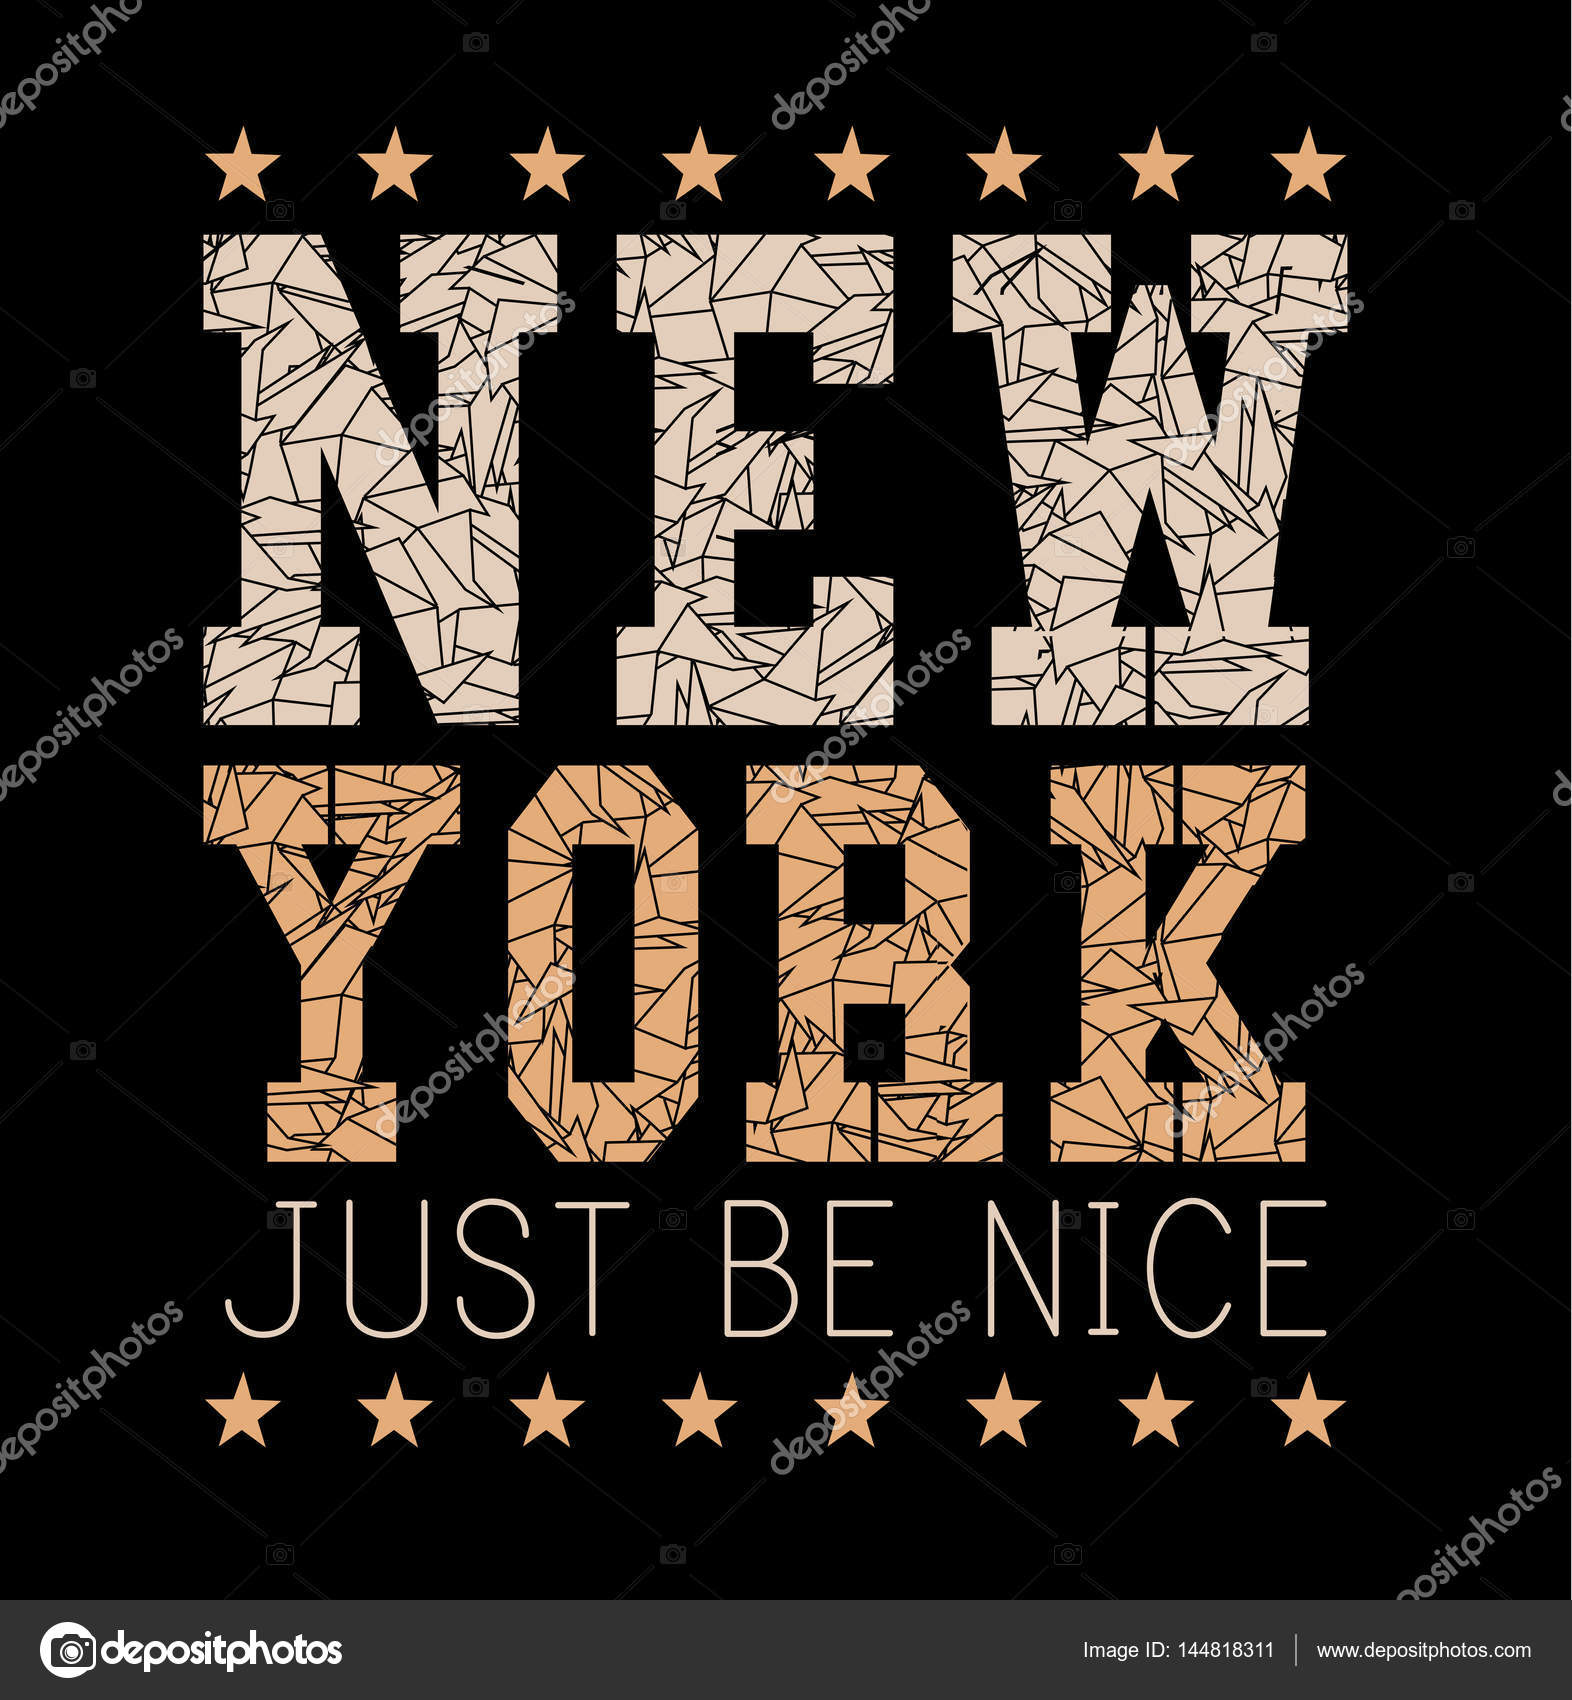 All graphics newest royalty free stock photos stock illustrations - New York City Print Design Royalty Free Stock Illustrations